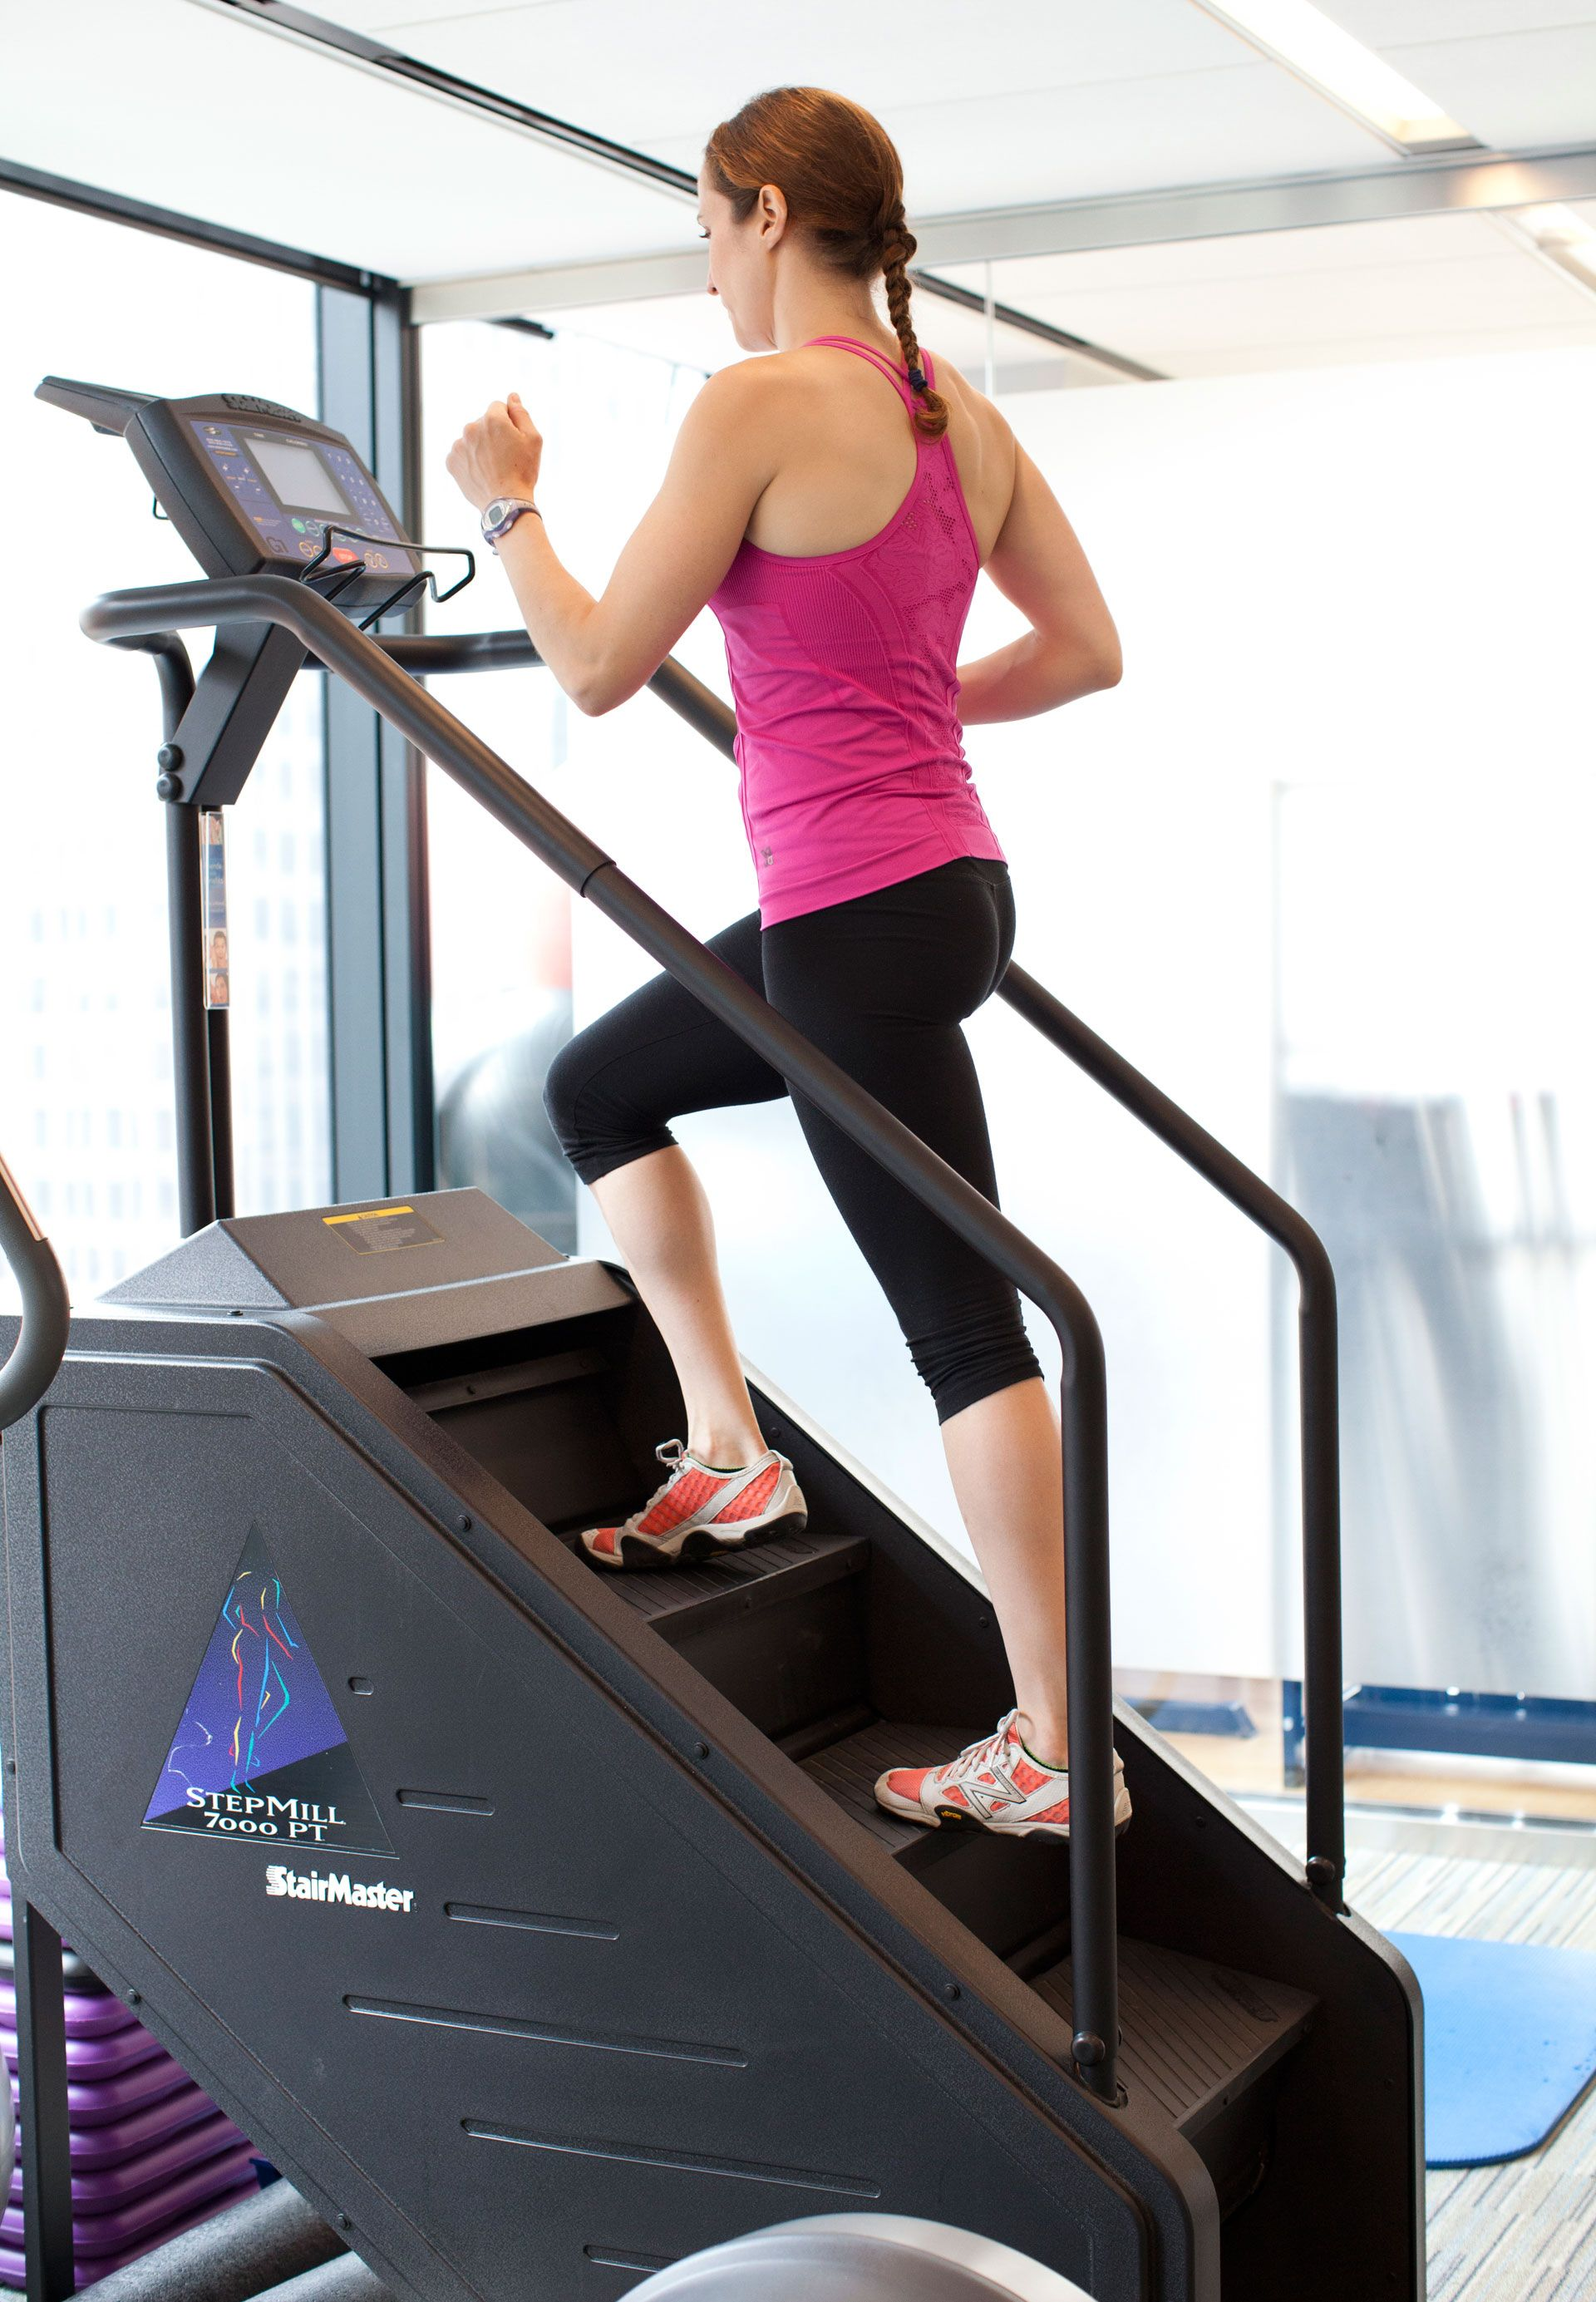 711c4beef3 This machine provides a great aerobic workout that also trains you for a  very common everyday activity  climbing stairs. Pick a pace you can  comfortably ...